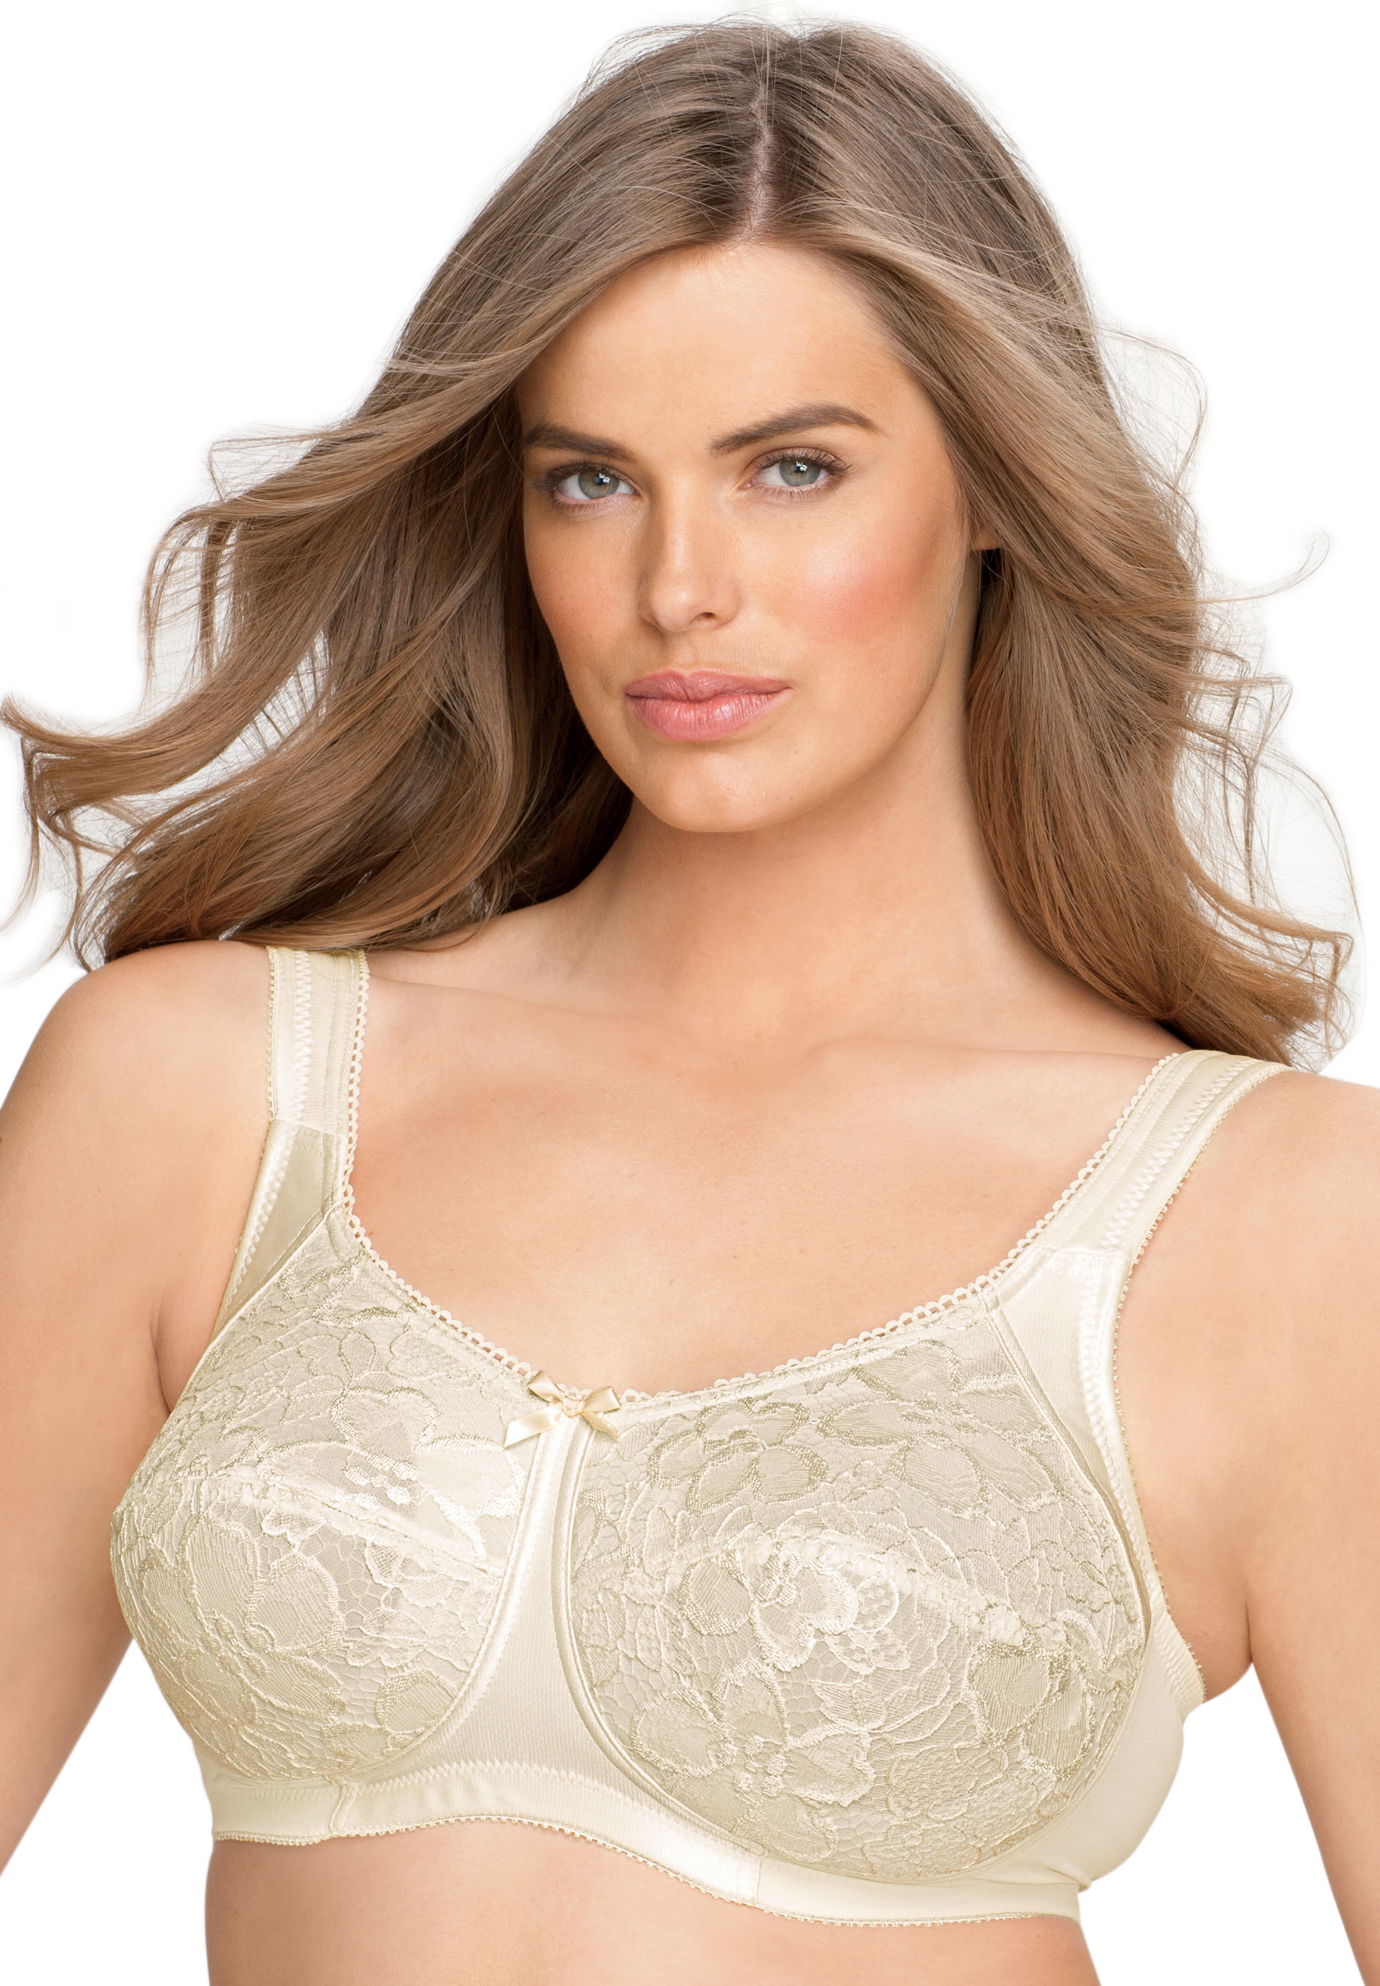 a50d2f1bf0 Wireless allover lace bra by Aviana®